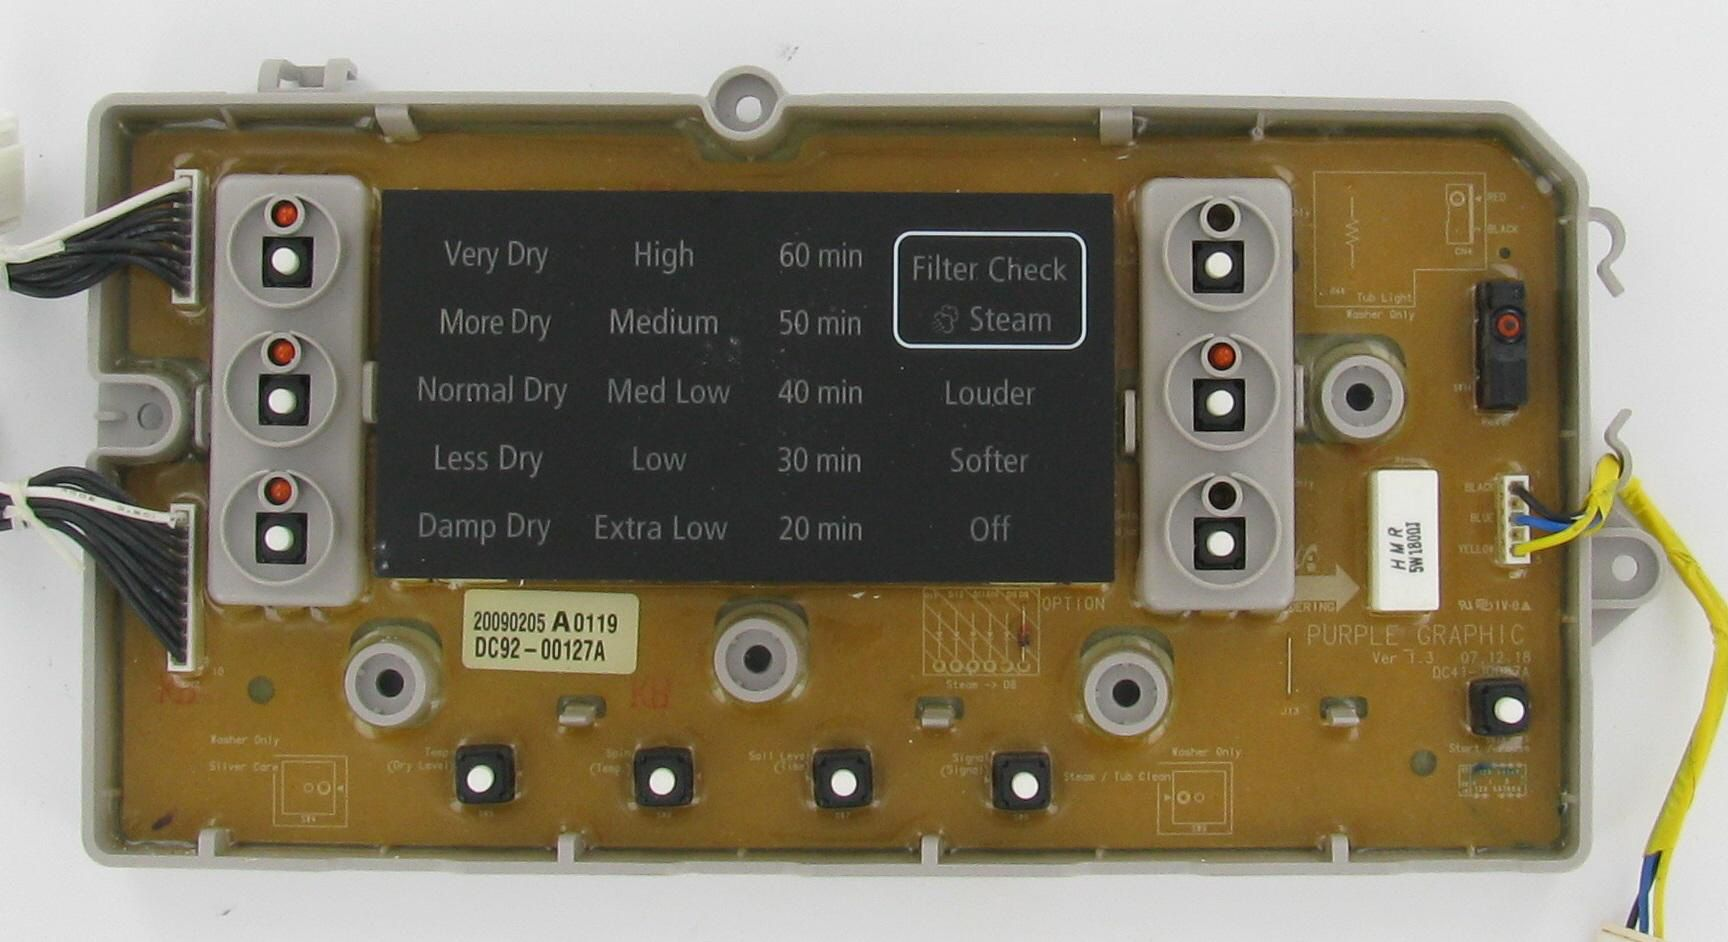 Samsung Dc92 00127a Laundry Dryer Pcb Assembly Board Laundry Dryer Broken Appliance Dryer